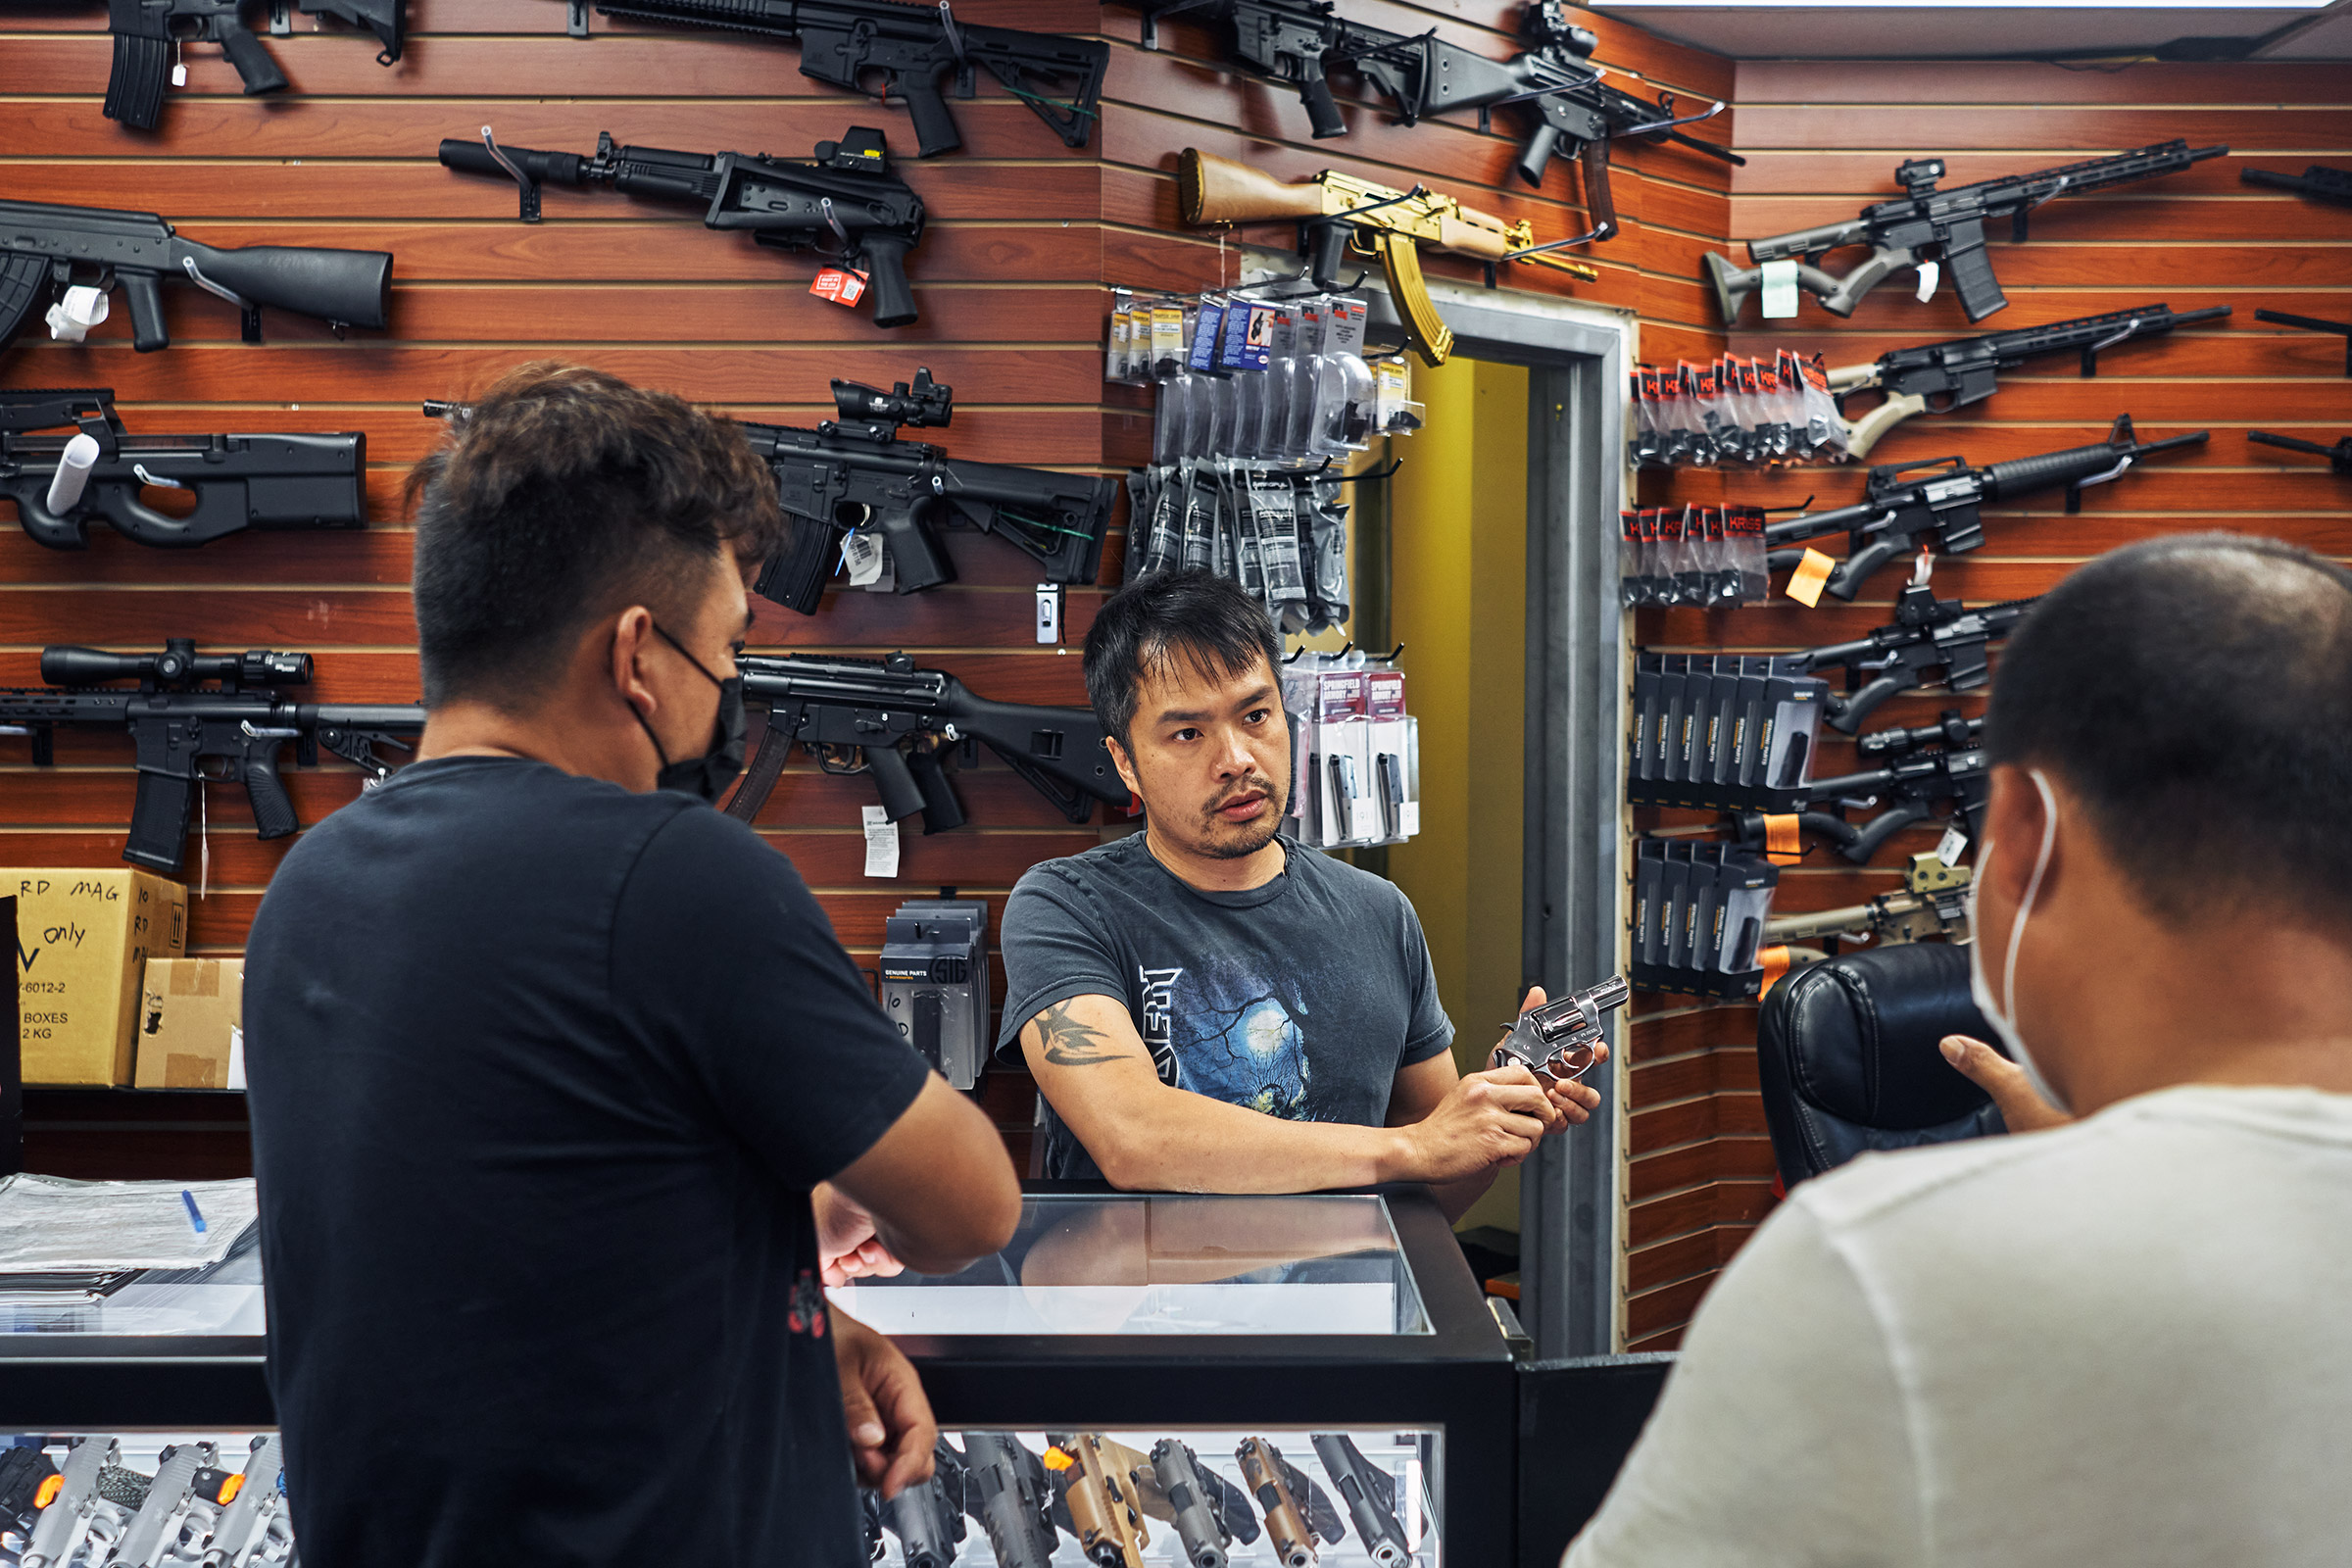 Jimmy Gong, co-owner of Jimmy's Sportshop in Mineola, N.Y., shows a revolver to customers on July 10, 2021.